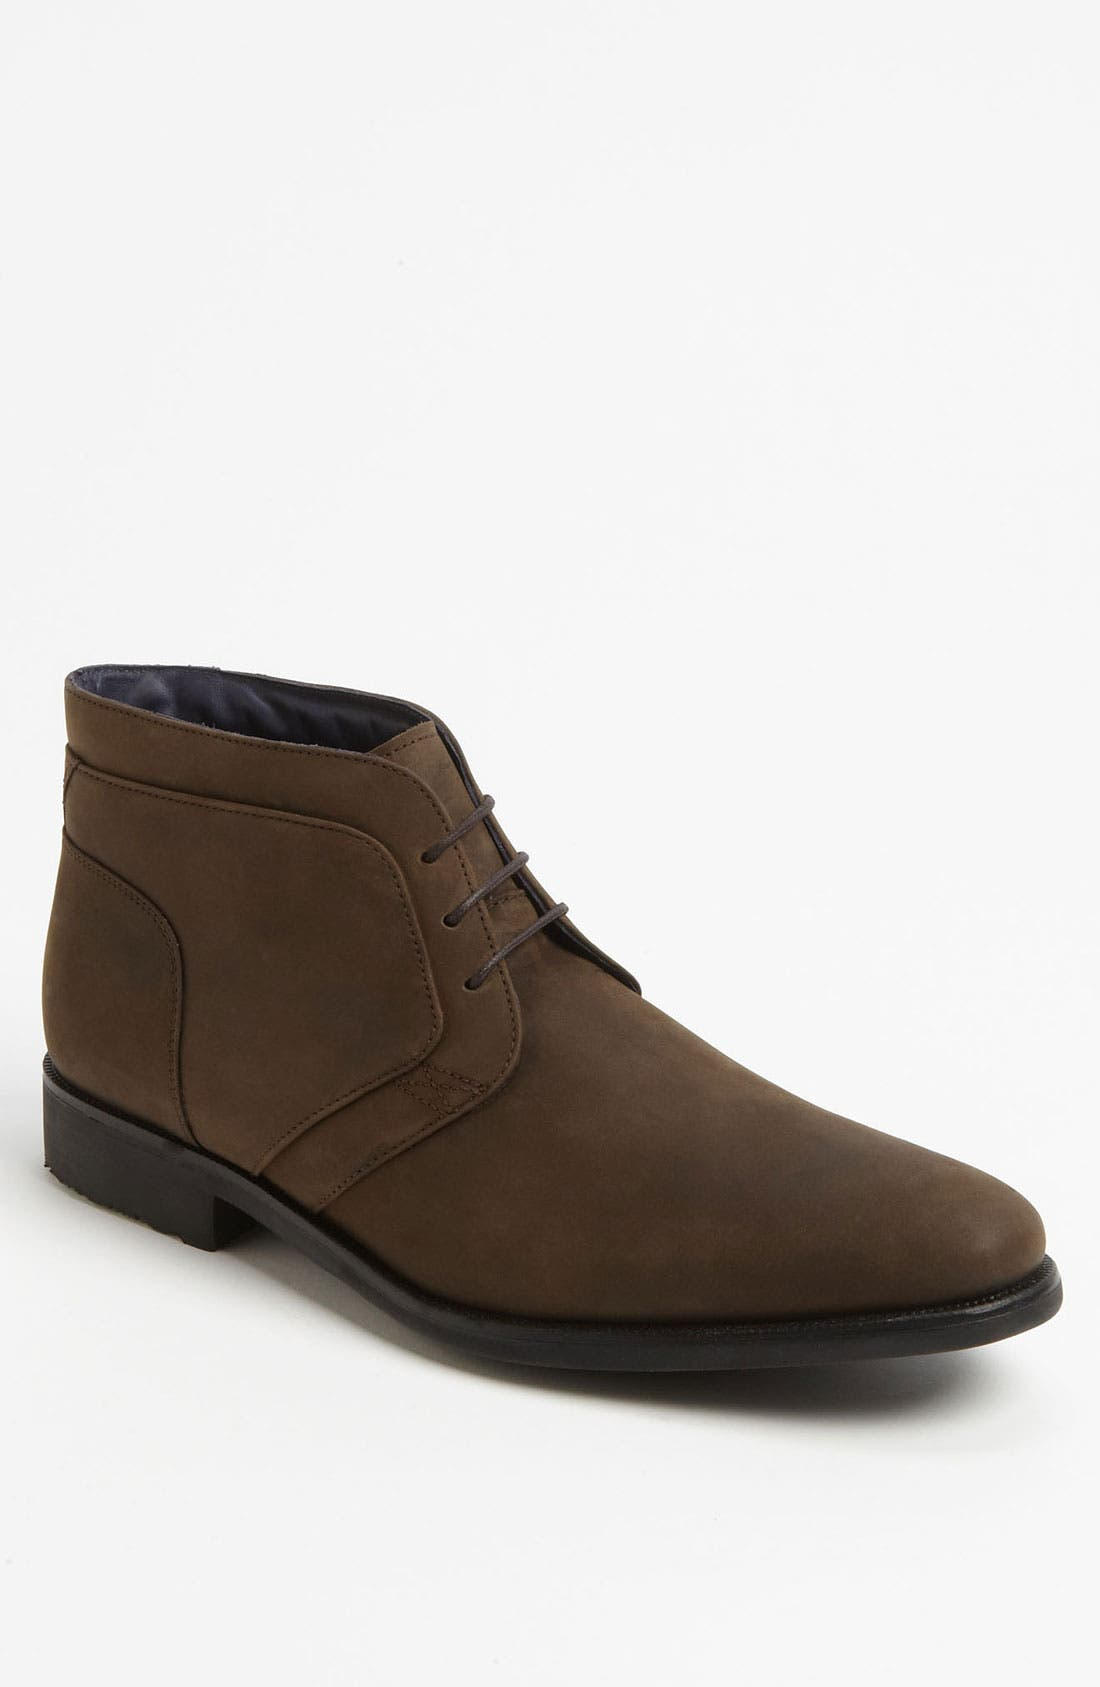 Main Image - Cole Haan 'Air Stanton' Chukka Boot